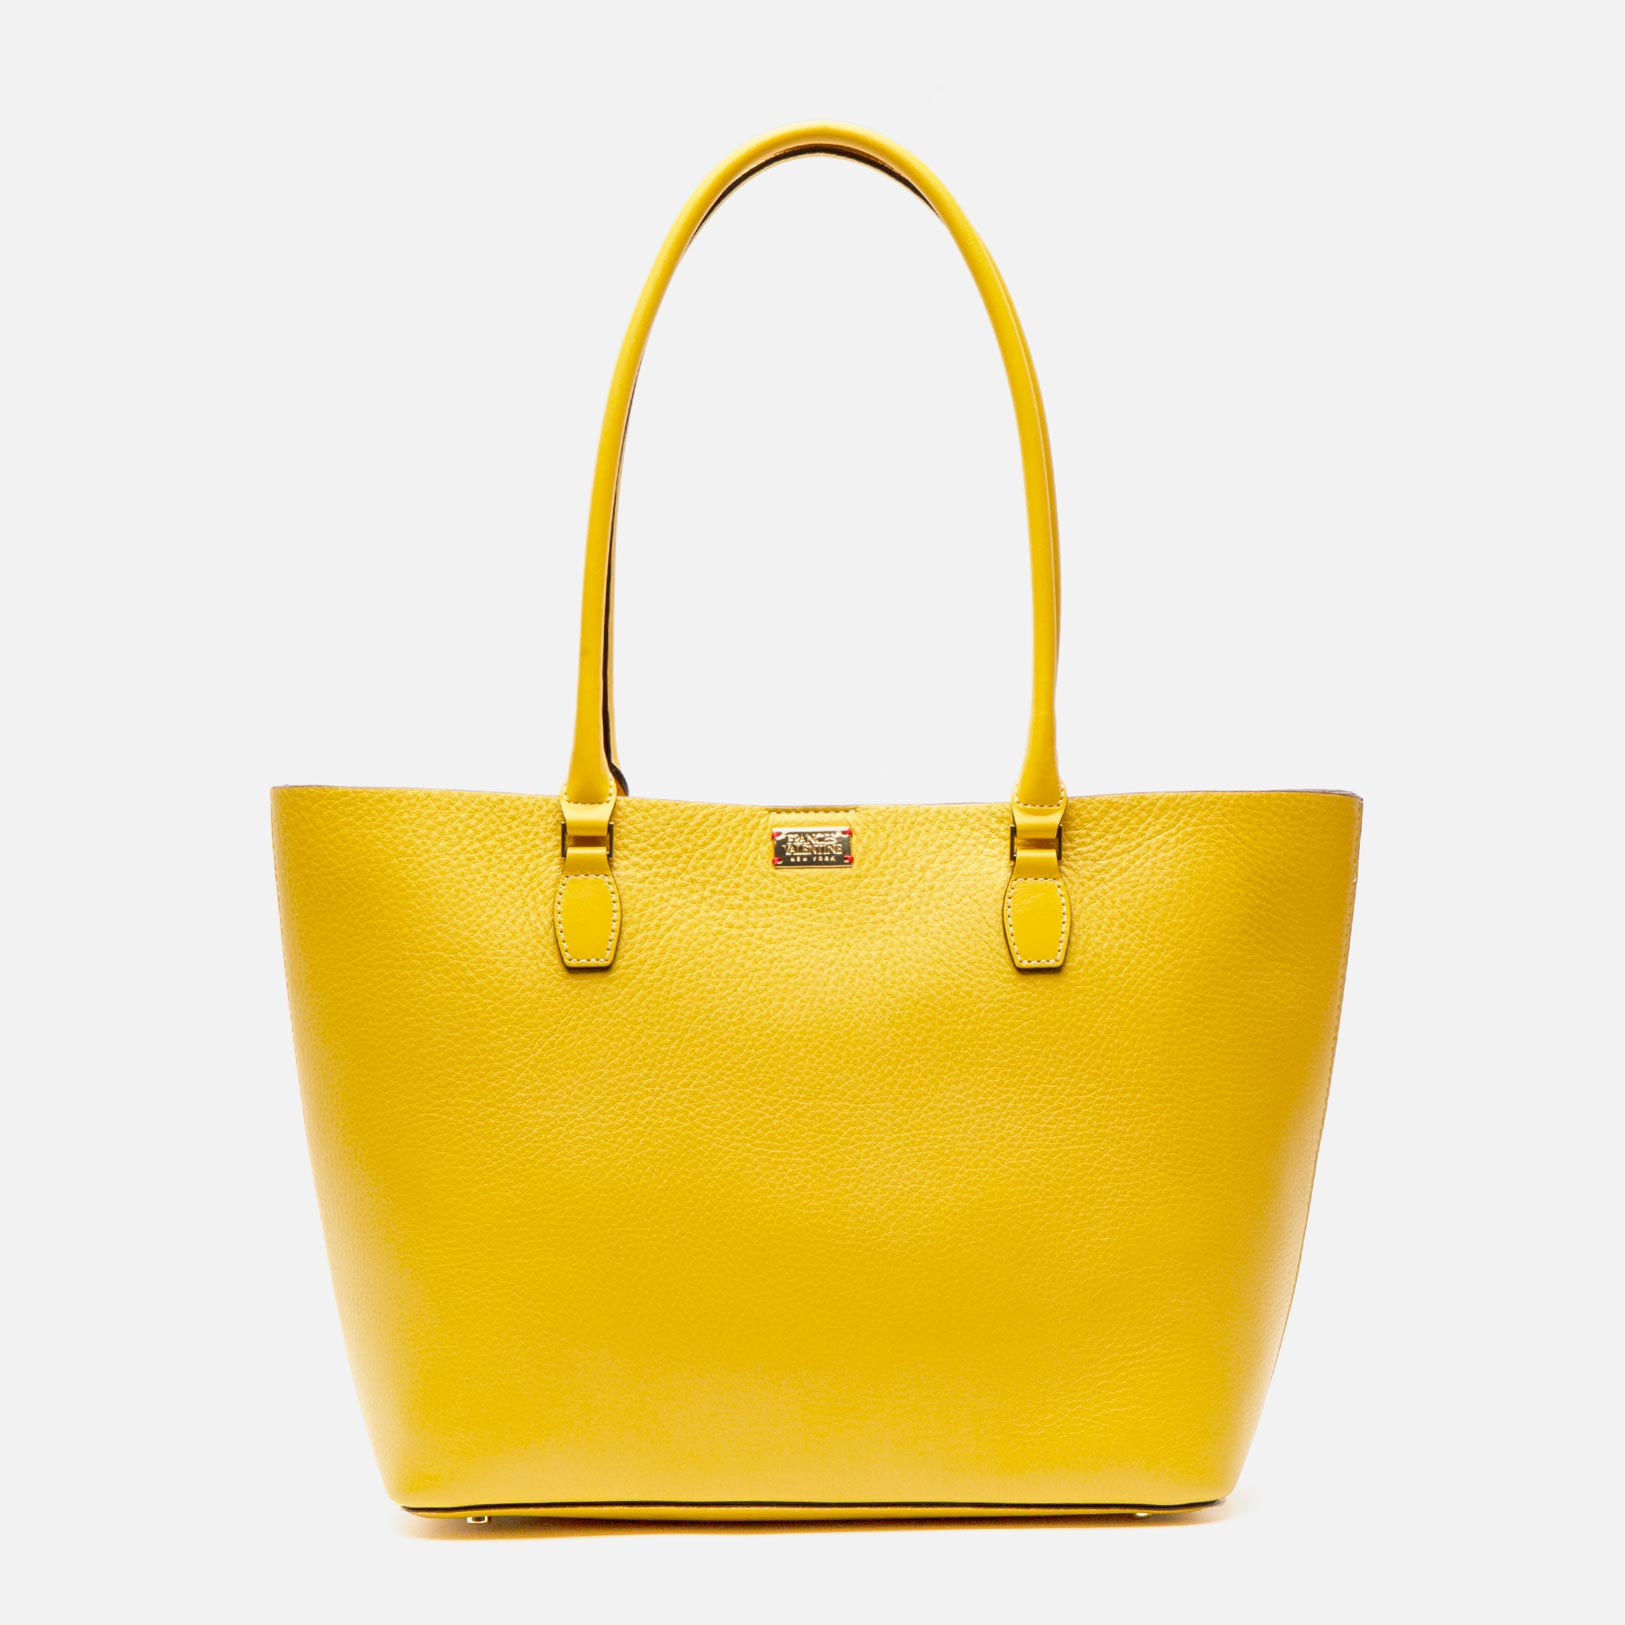 Medium Trixie Tumbled Leather Tote Yellow - Frances Valentine